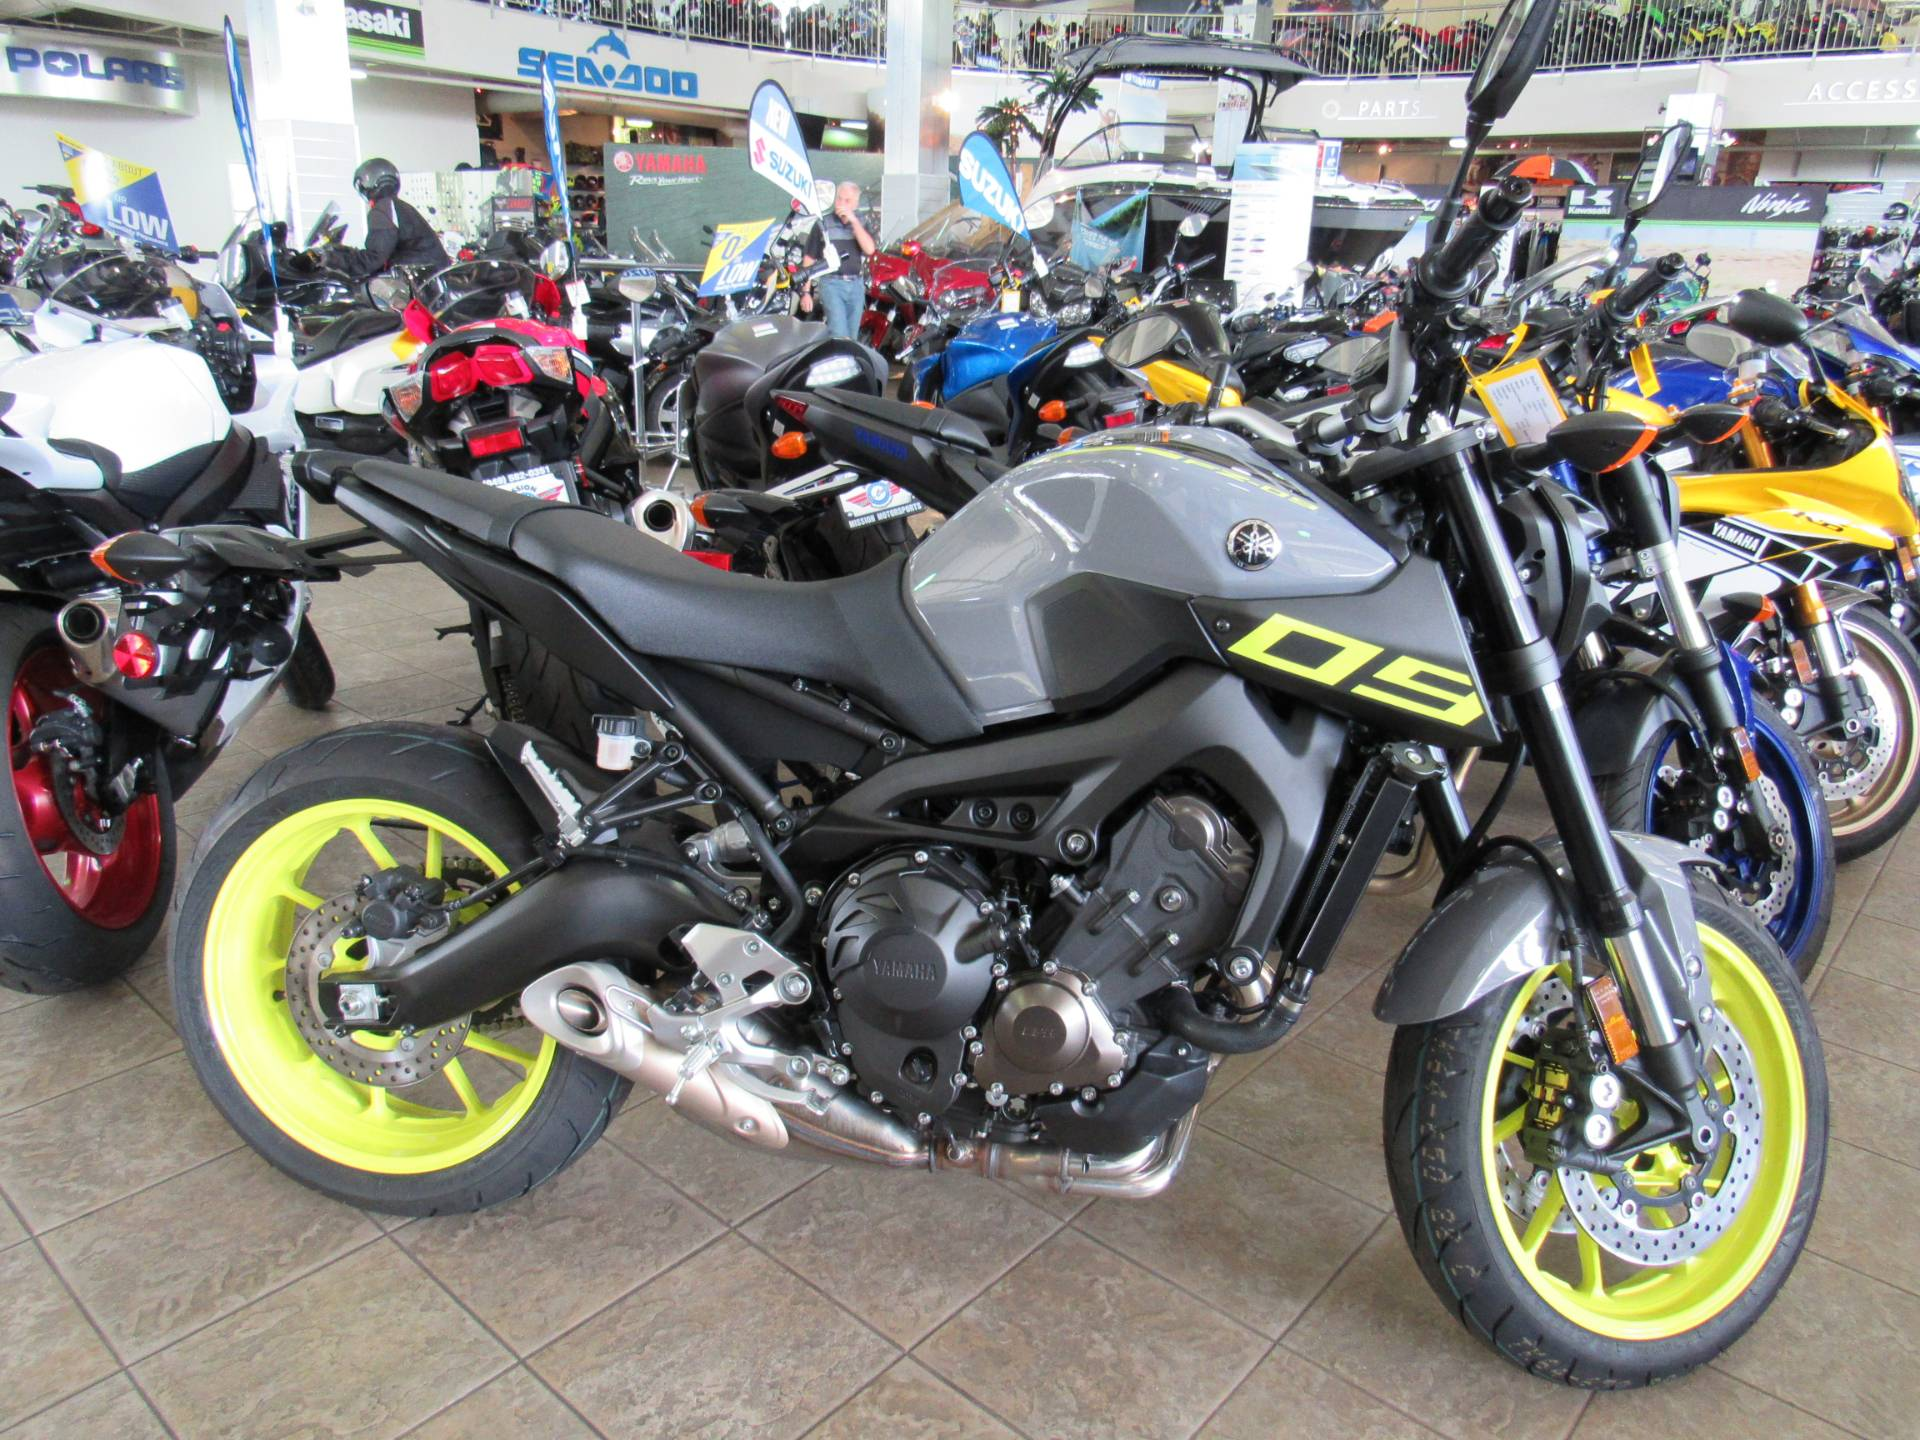 2016 Yamaha FZ-09 in Irvine, California